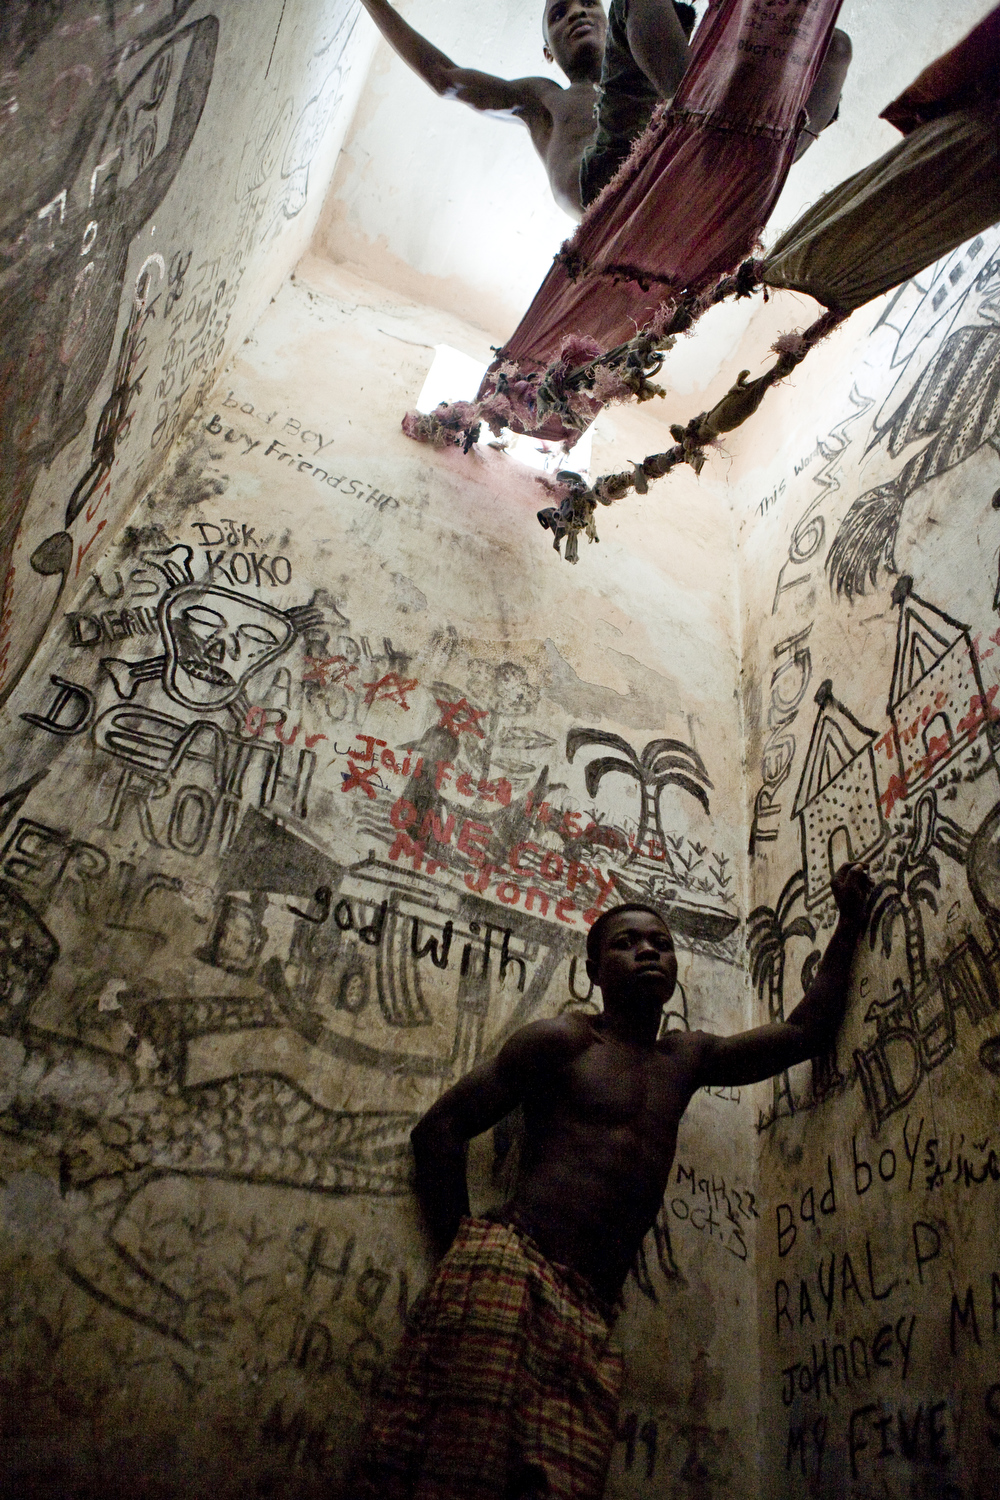 Cells in Monrovia Central Prison intended for two prisoners are often crowded with up to seven inmates. Some sleep on hammocks made from empty rice bags tied to the cell bars and windows.